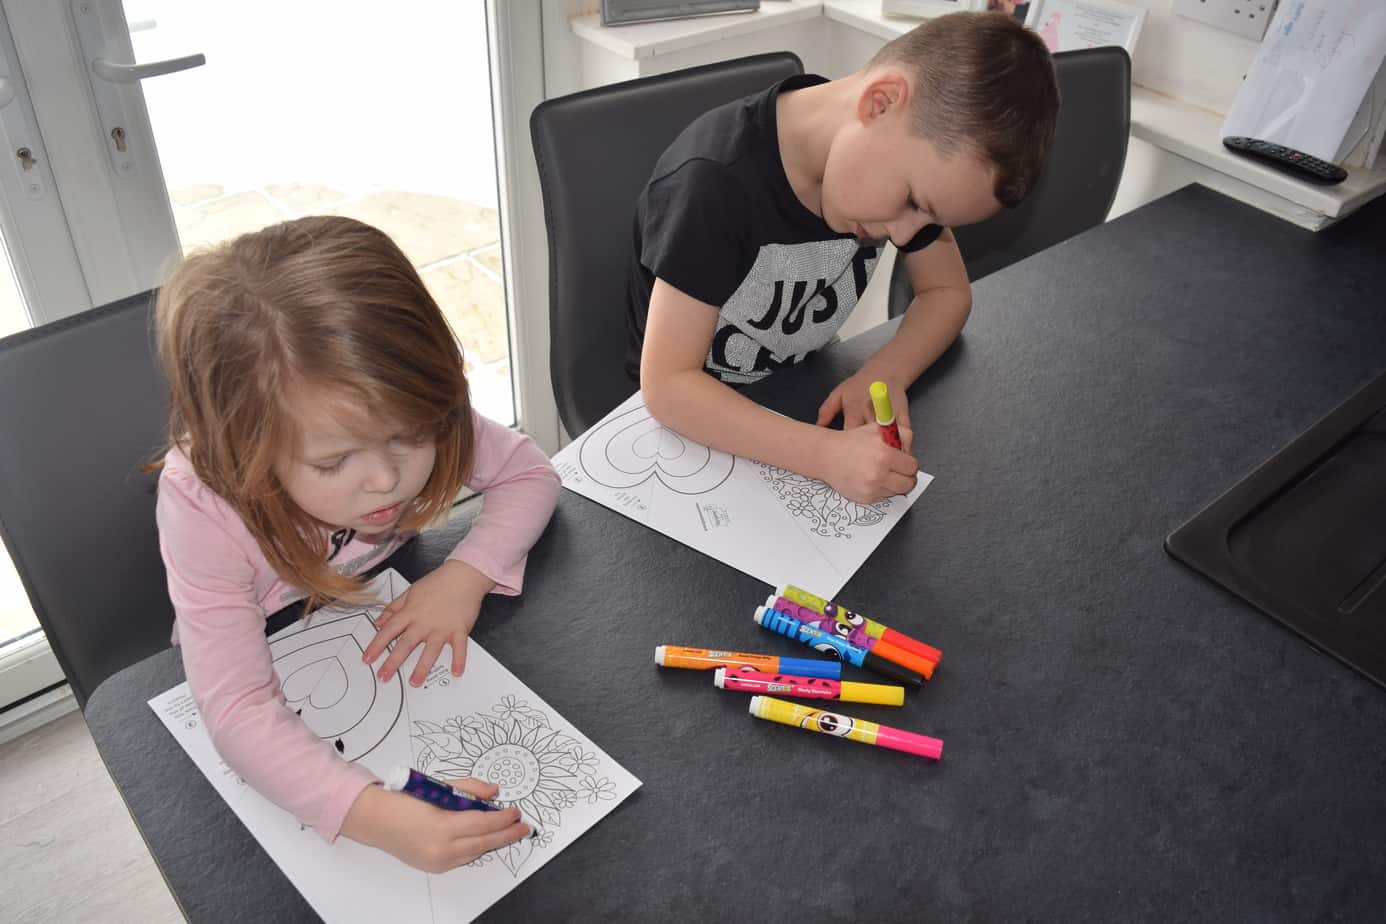 The children are now colouring in their print outs from mrs Mactivity using lots of coloured felt tips